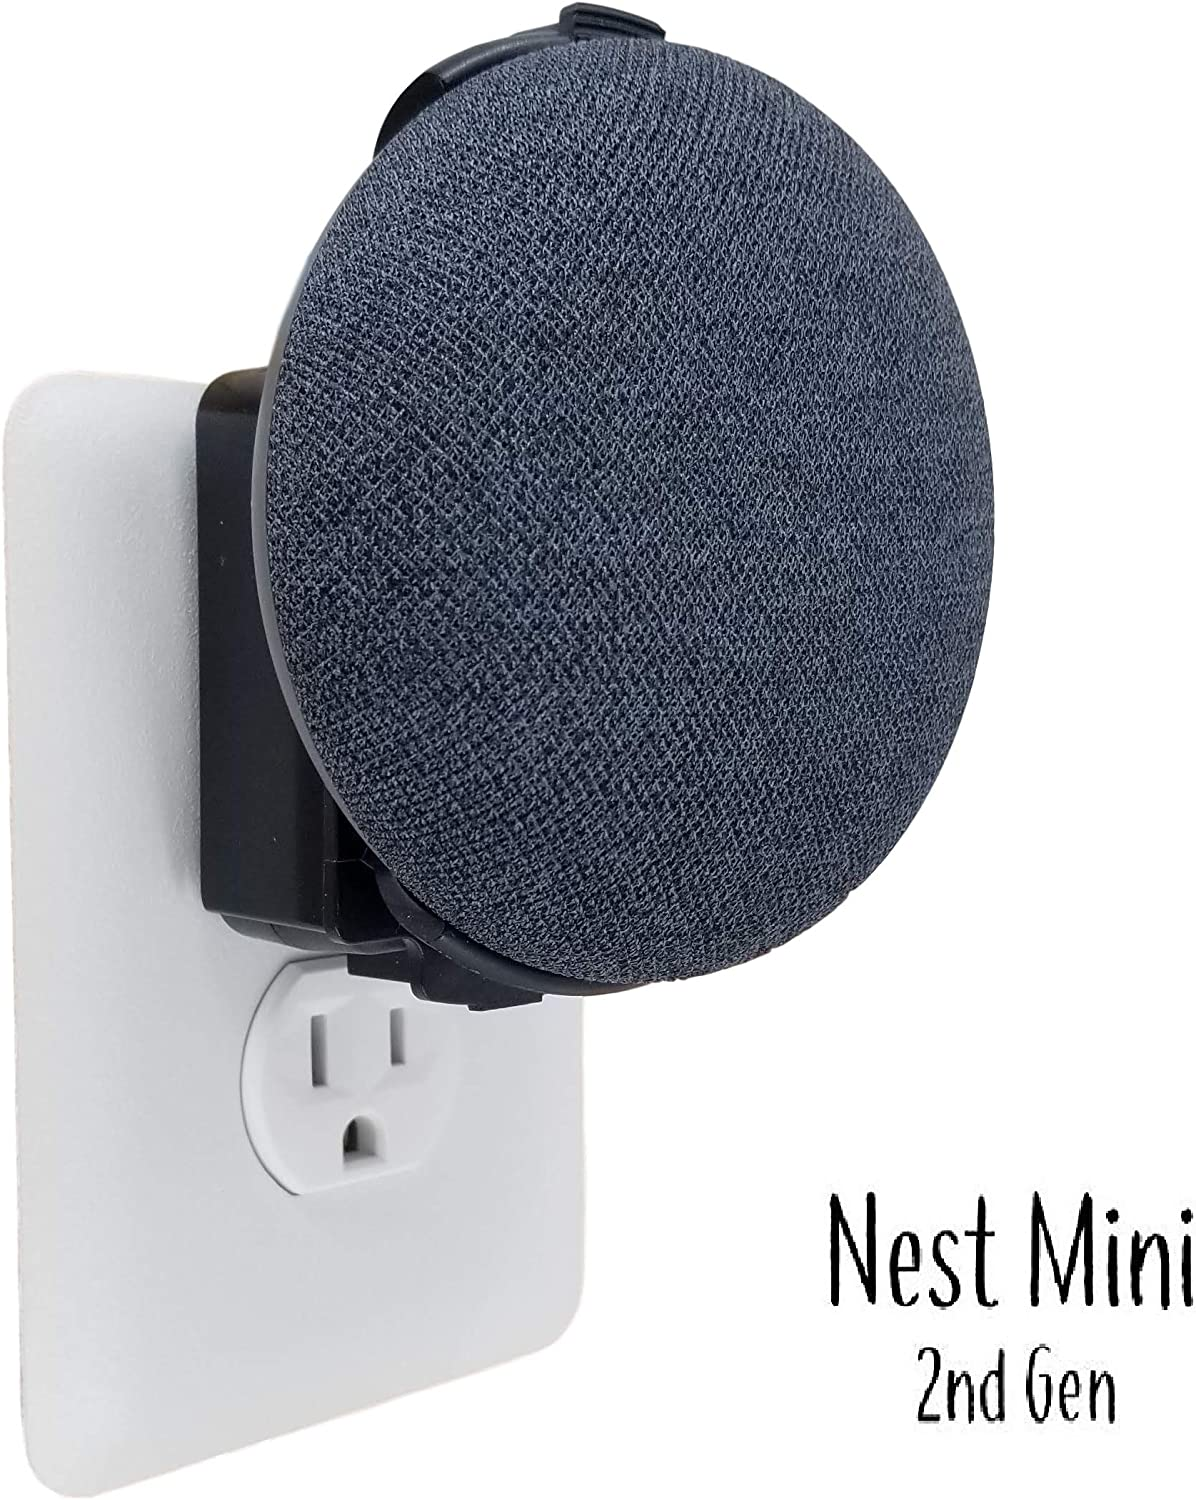 The Nest Mini Backpack 2nd Gen 2019: The Simplest and Cleanest Outlet Wall Mount Hanger Stand for New Google Nest Mini - No Cord Wrapping Required - Designed in USA (Black)